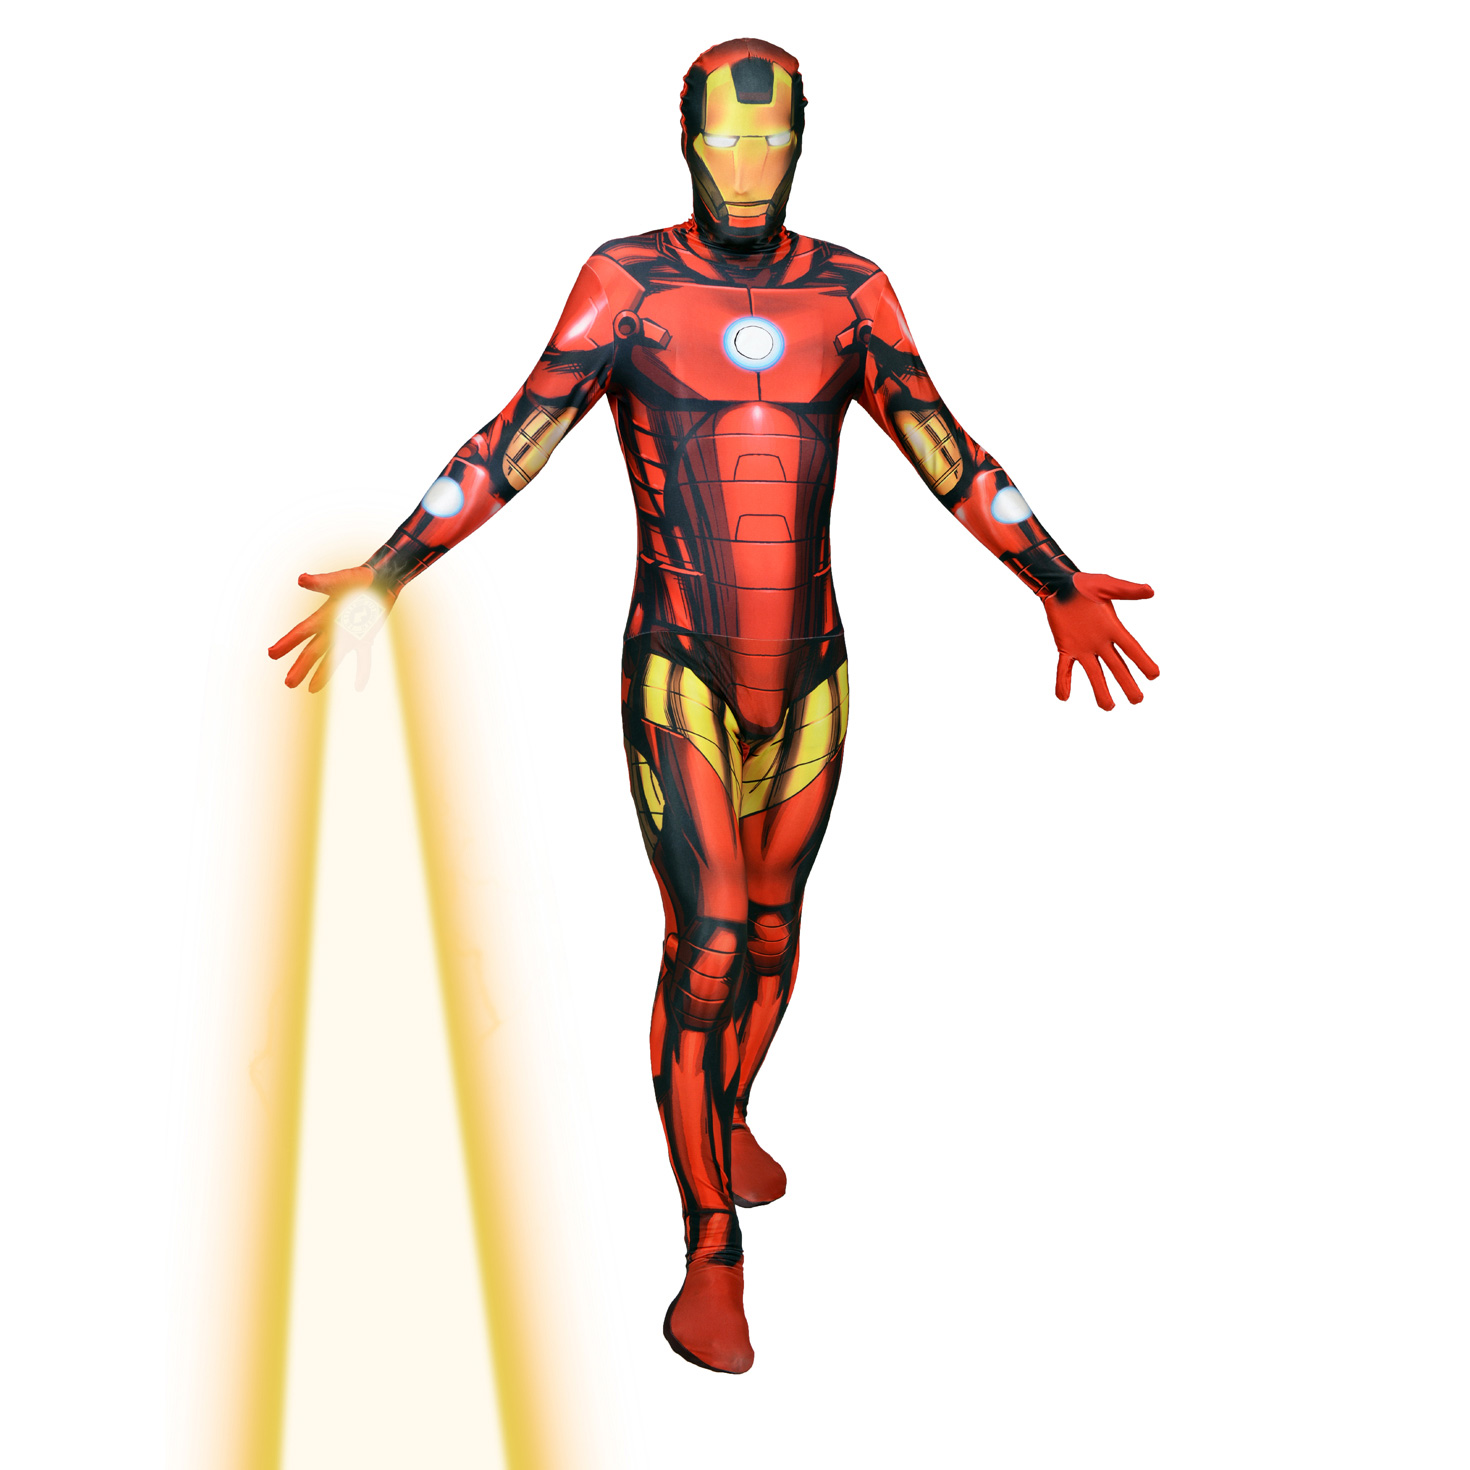 d guisement combinaison int grale iron man costume morphsuit seconde peau ironman interactif. Black Bedroom Furniture Sets. Home Design Ideas